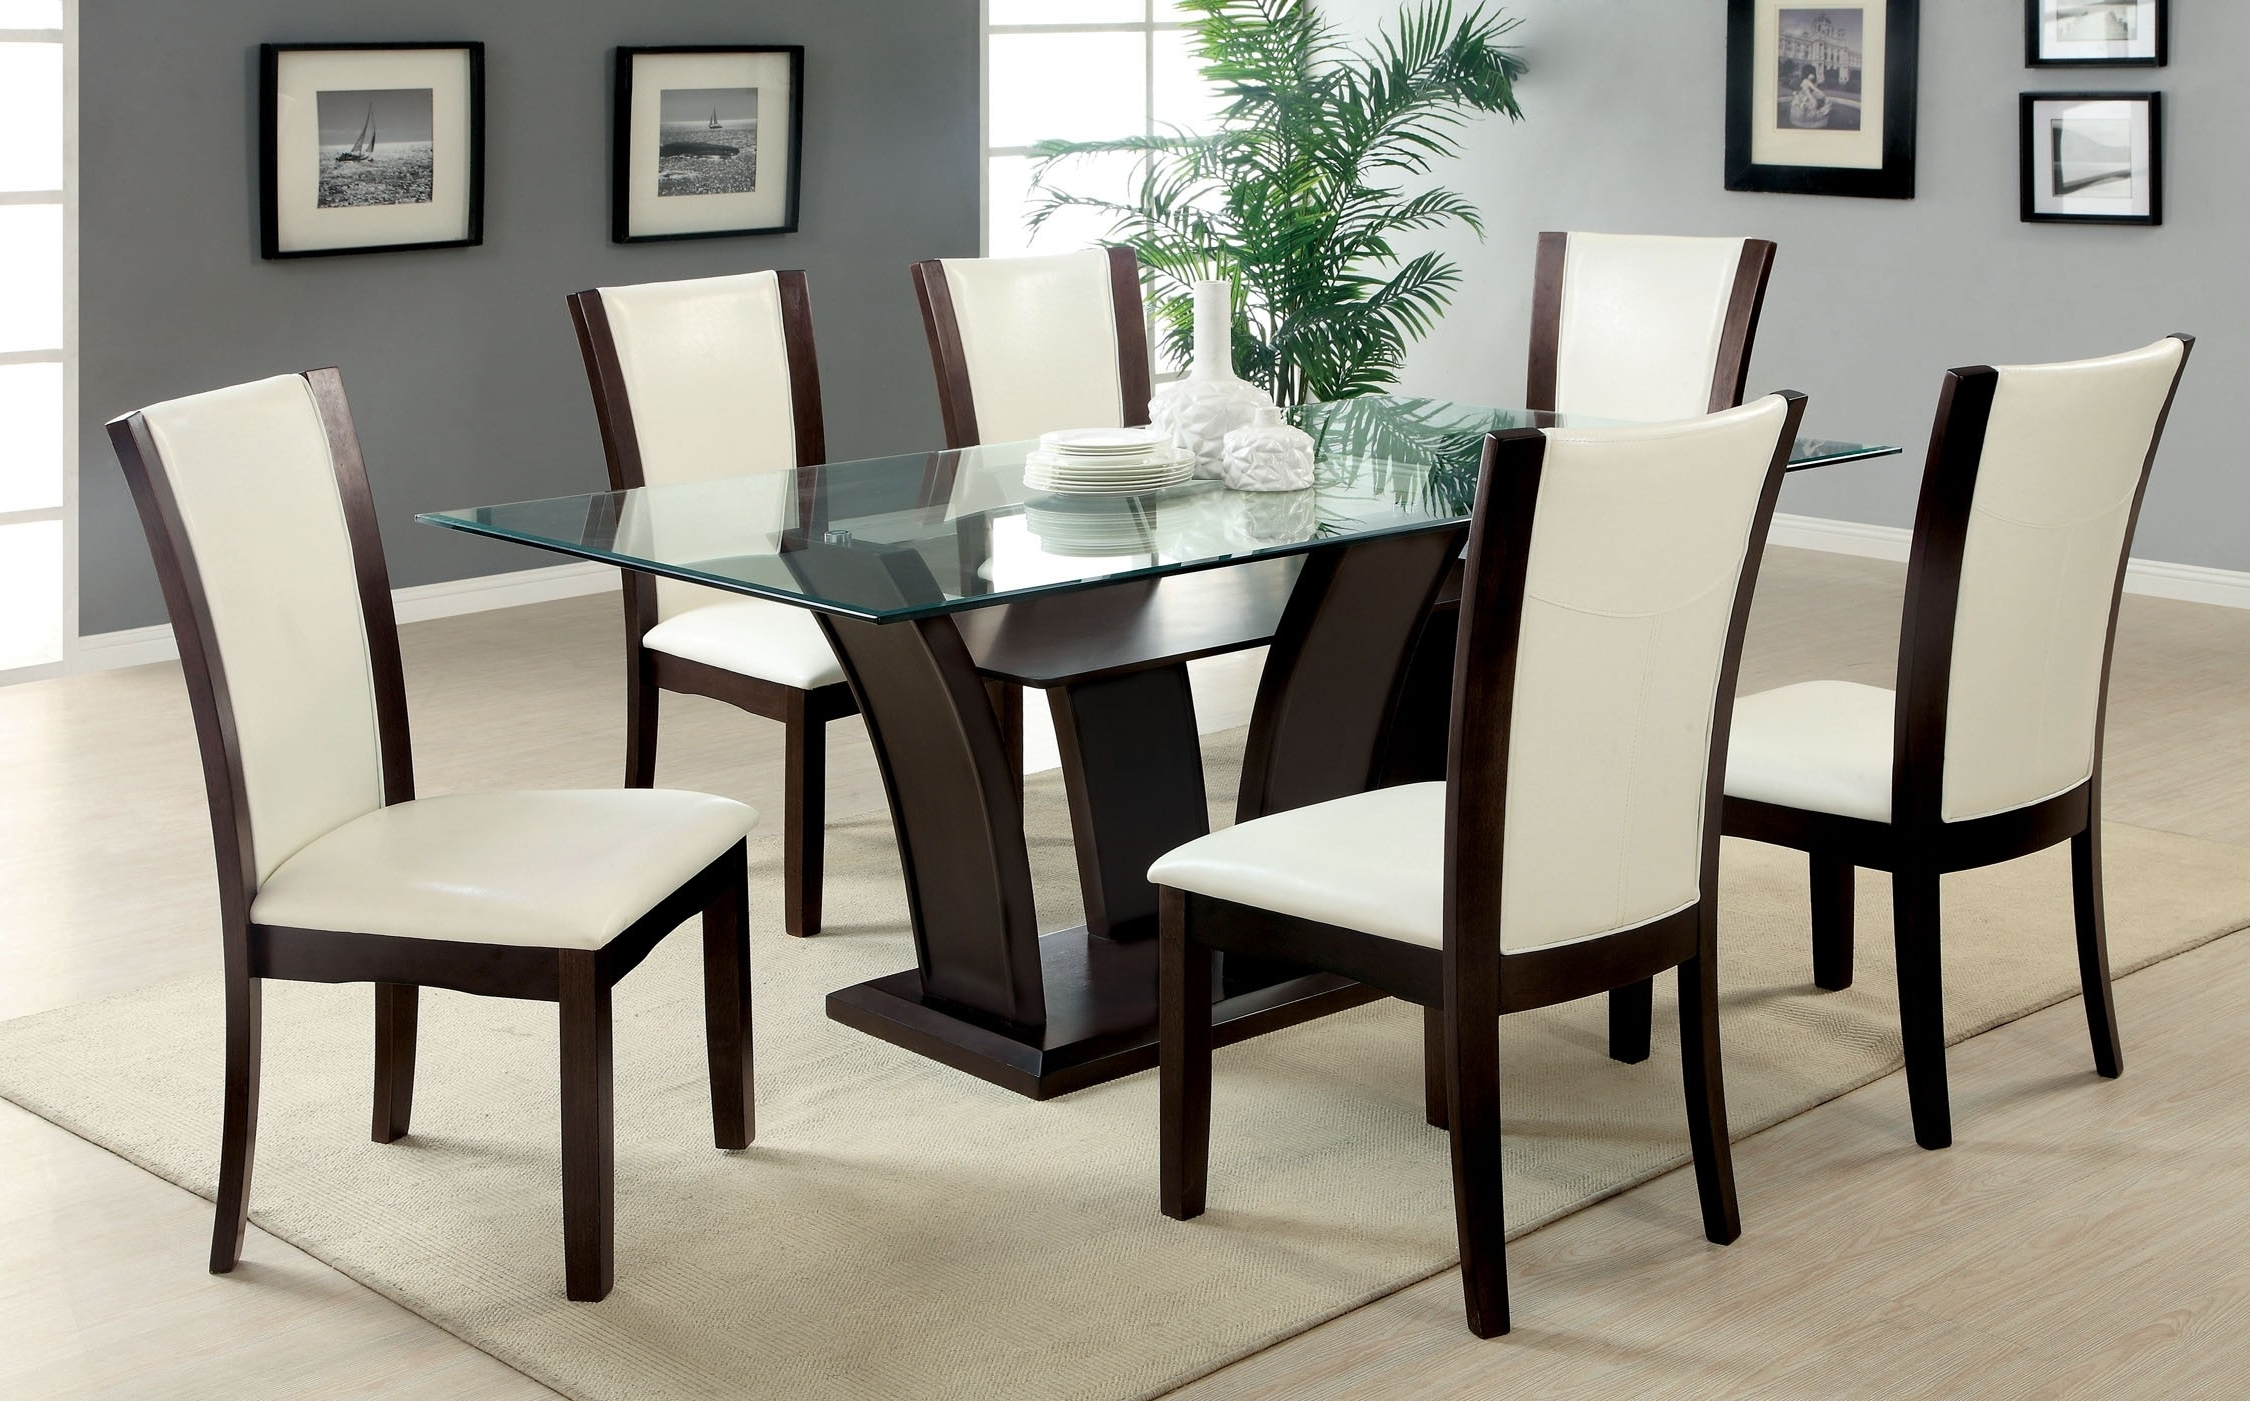 Trendy 6 Seater Glass Dining Table Sets • Table Setting Ideas Inside Cora 7 Piece Dining Sets (View 22 of 25)